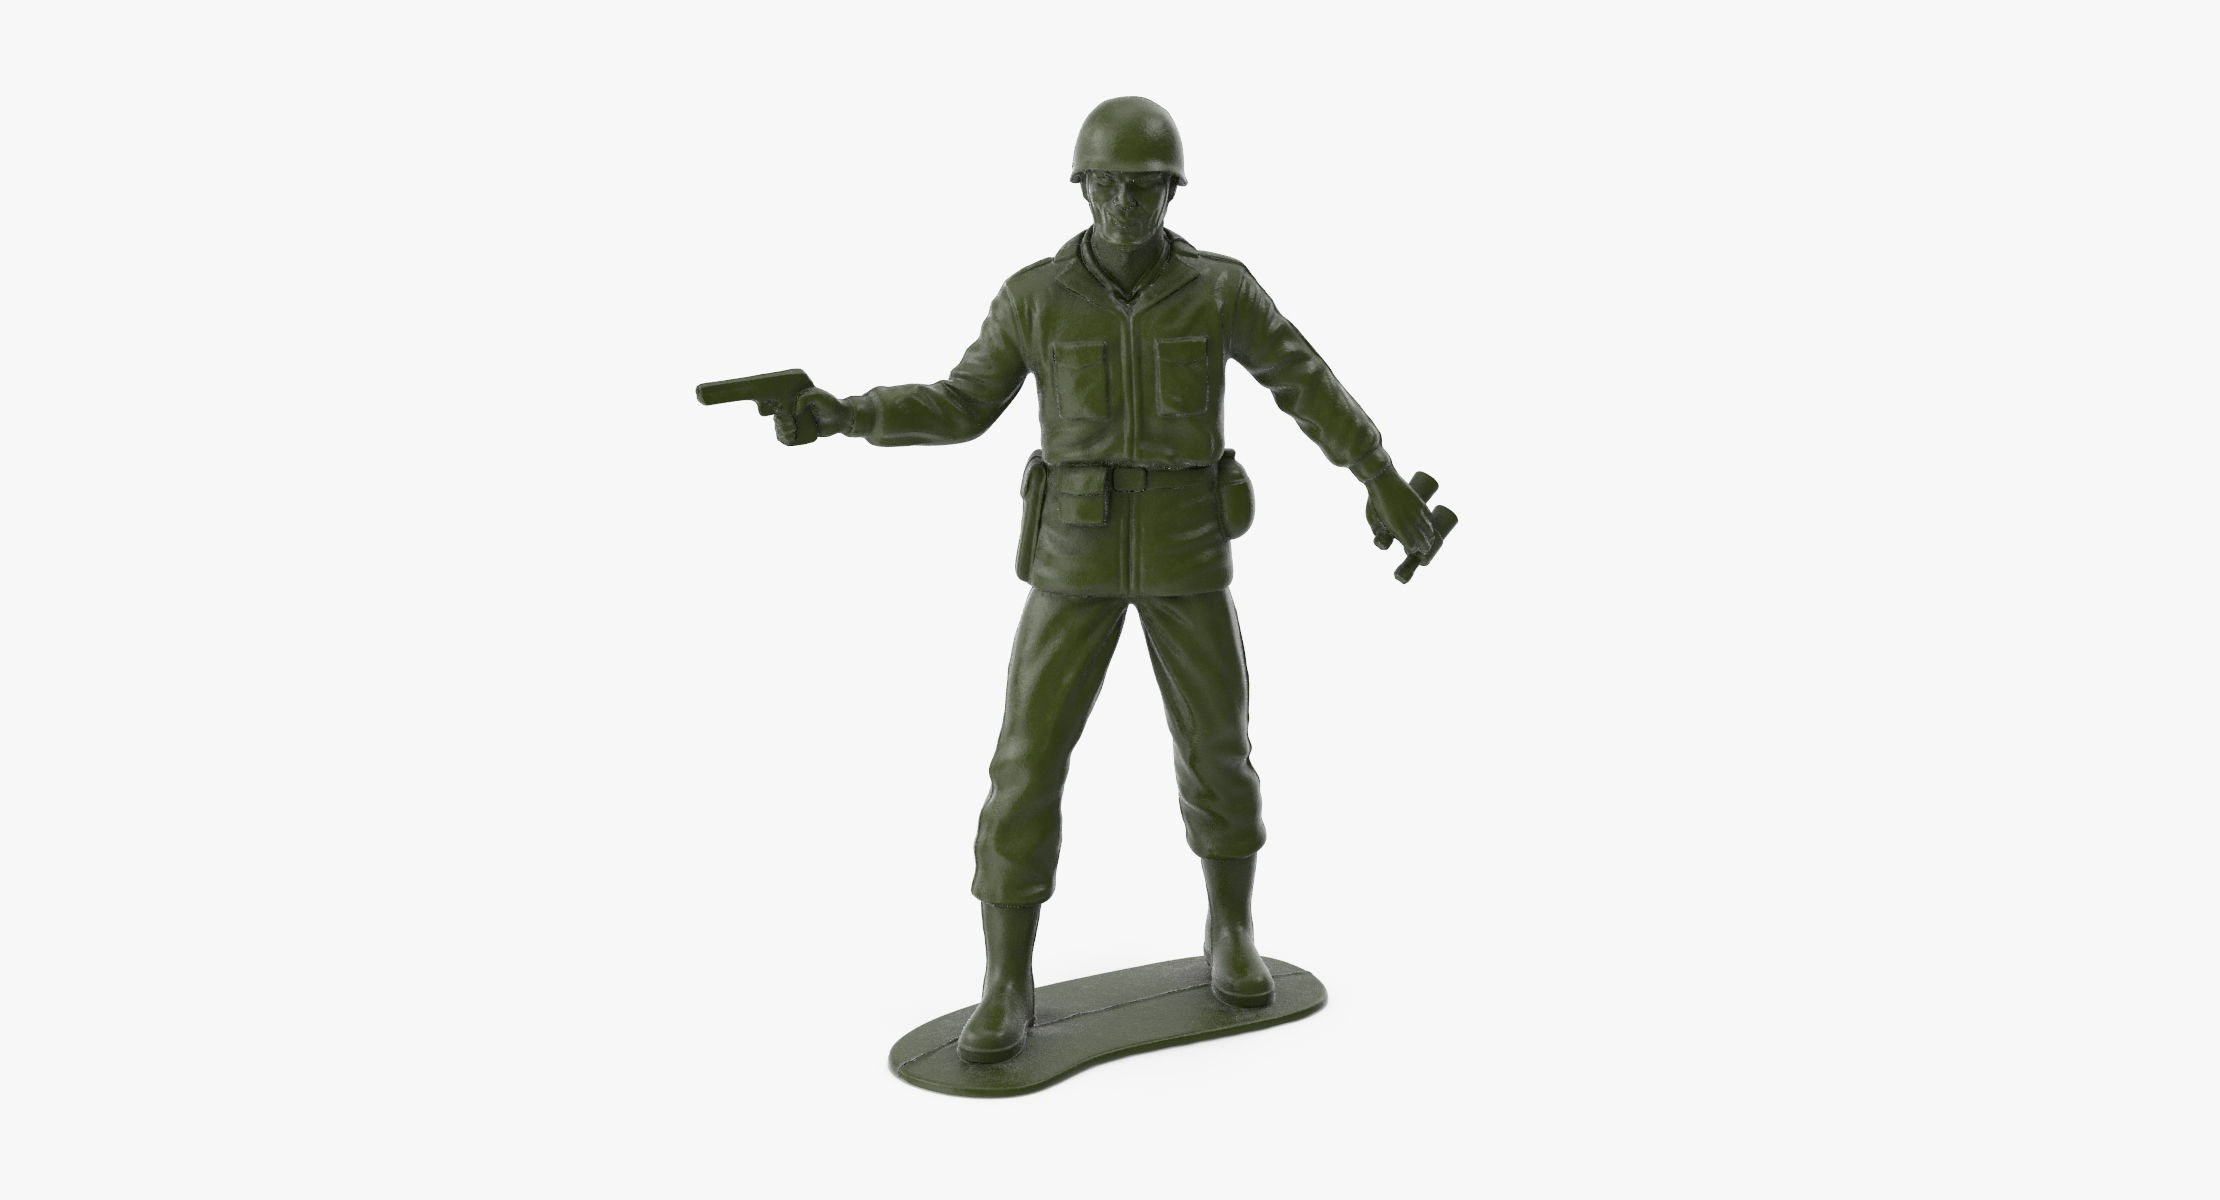 Plastic Toy Soldier 05 - Pistol - reel 1